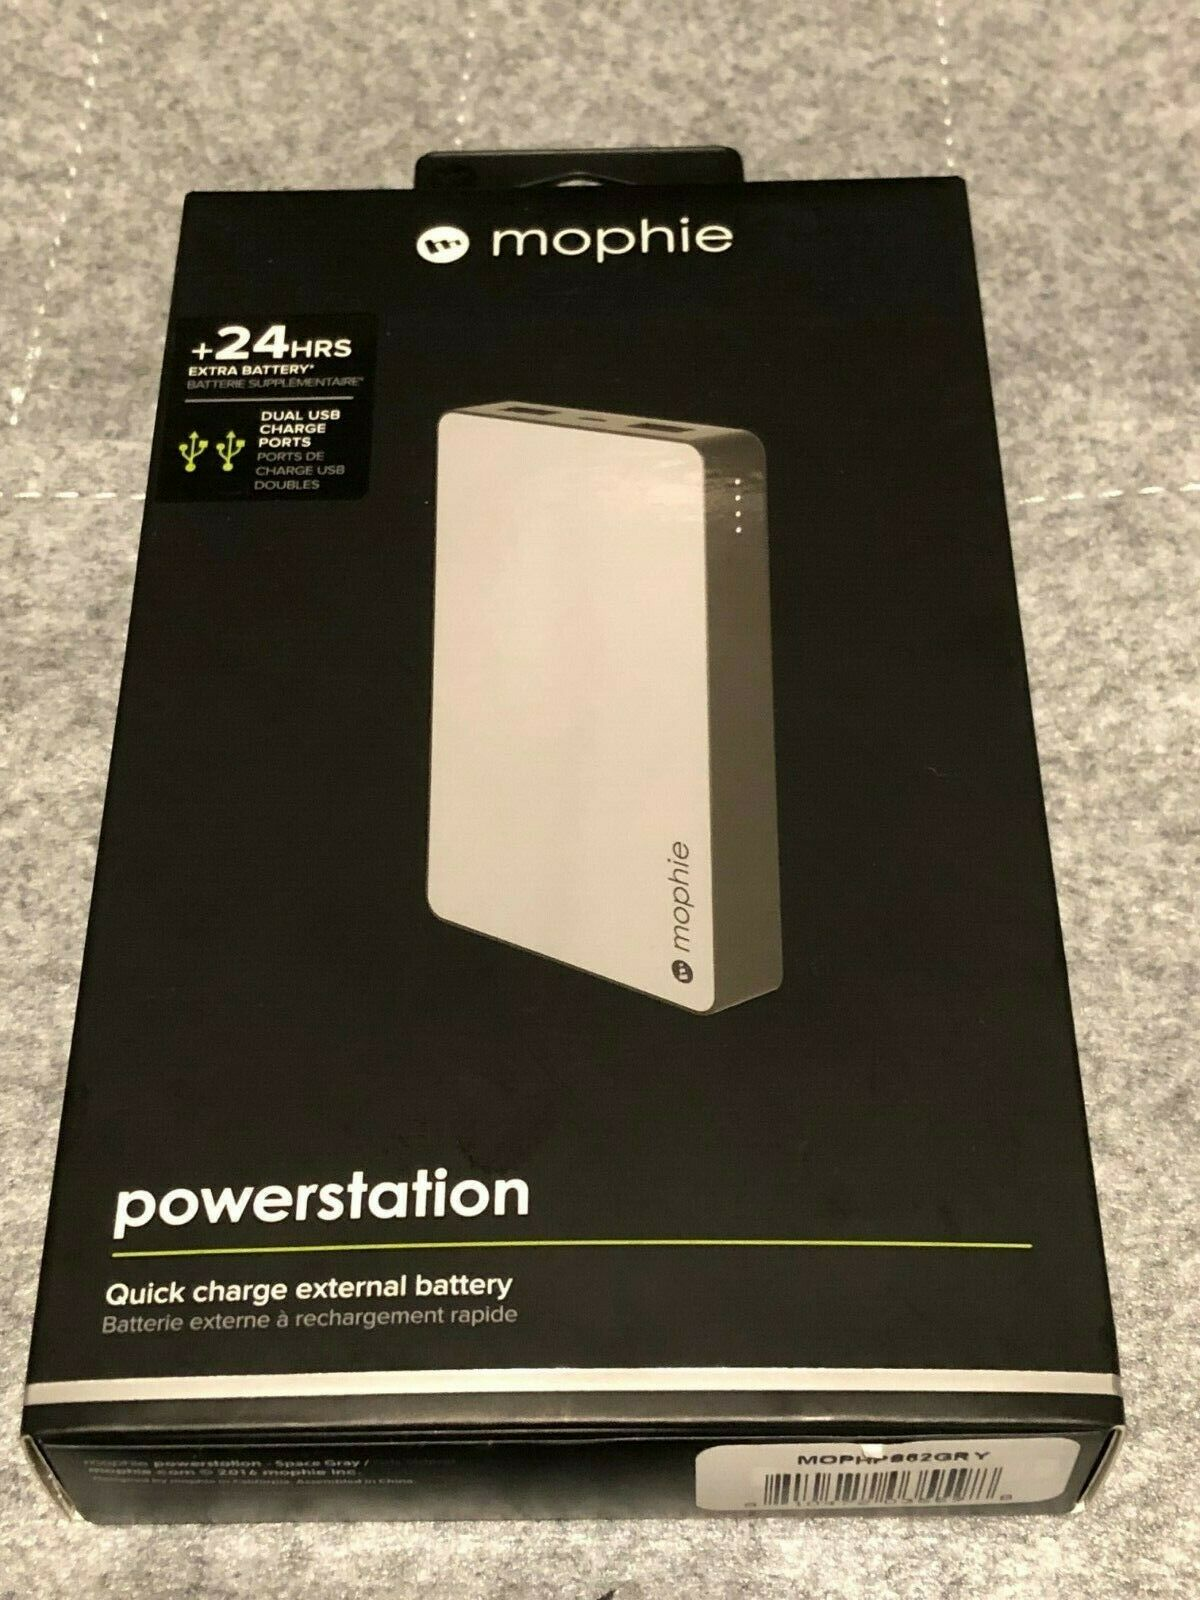 New Mophie Powerstation 24 HR Quick Charge Battery 6000 MAH